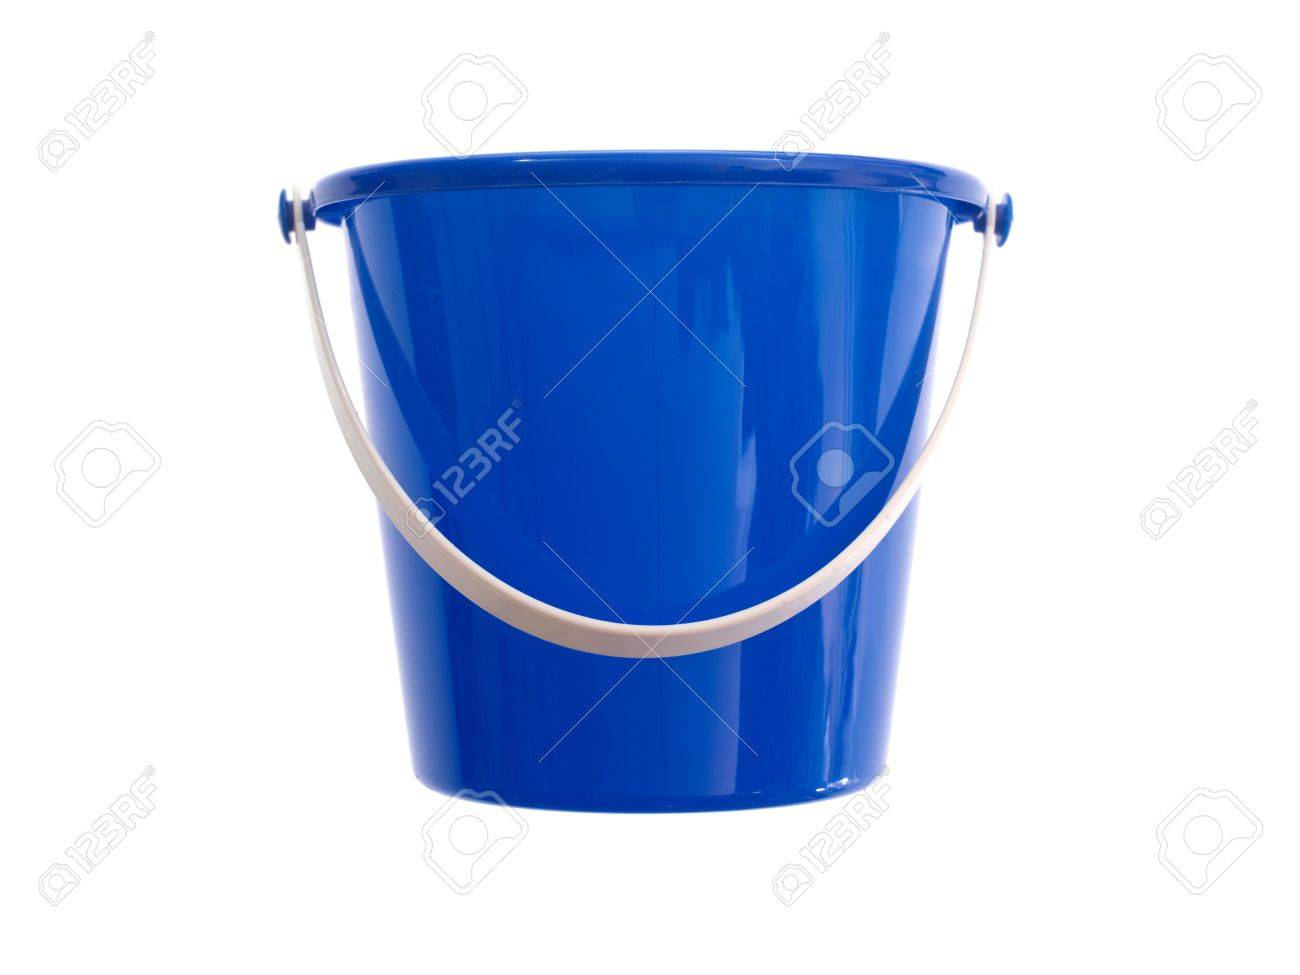 A toy bucket and spade set  isolated against a white background Stock Photo - 13545583